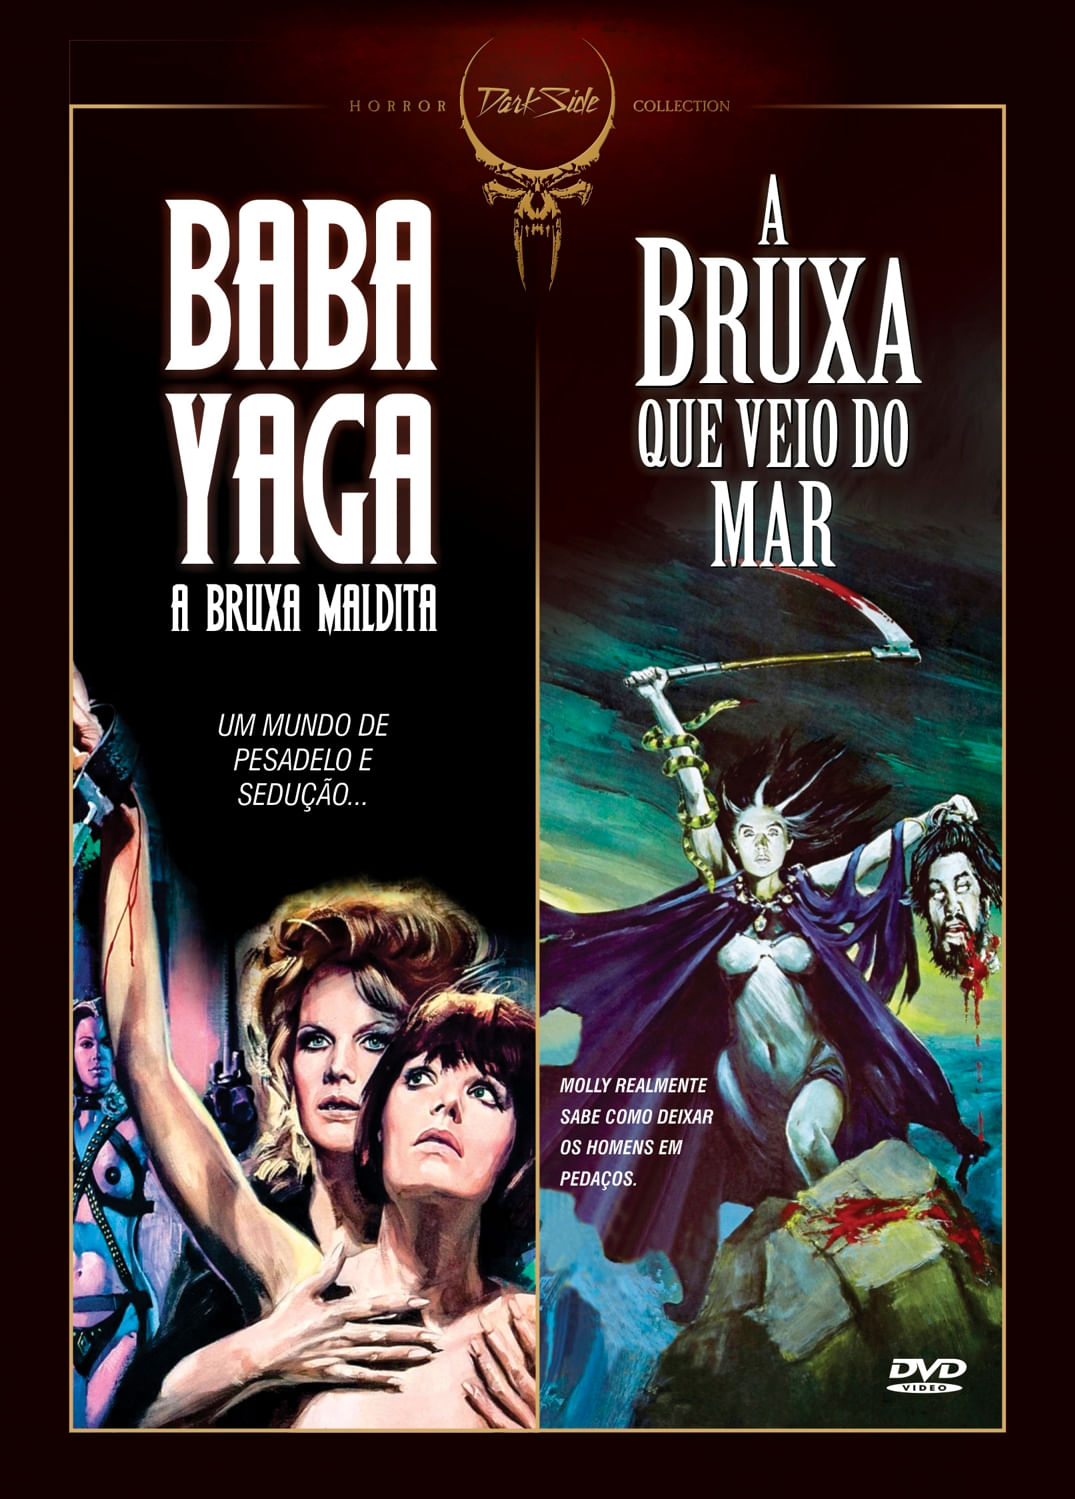 DARK-SIDE---Vol-5---Baba-Yaga-A-Bruxa-Maldita---Bruxa-Que-Veio-Do-Mar-A---luva